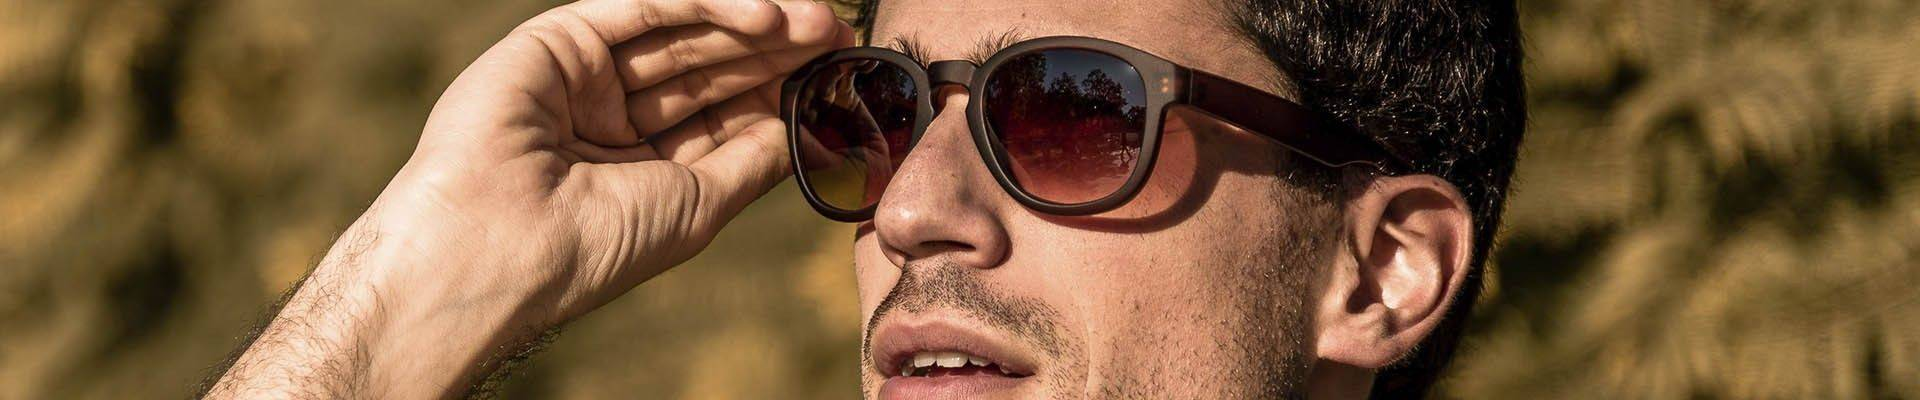 Unisex sunglasses by Charly Therapy